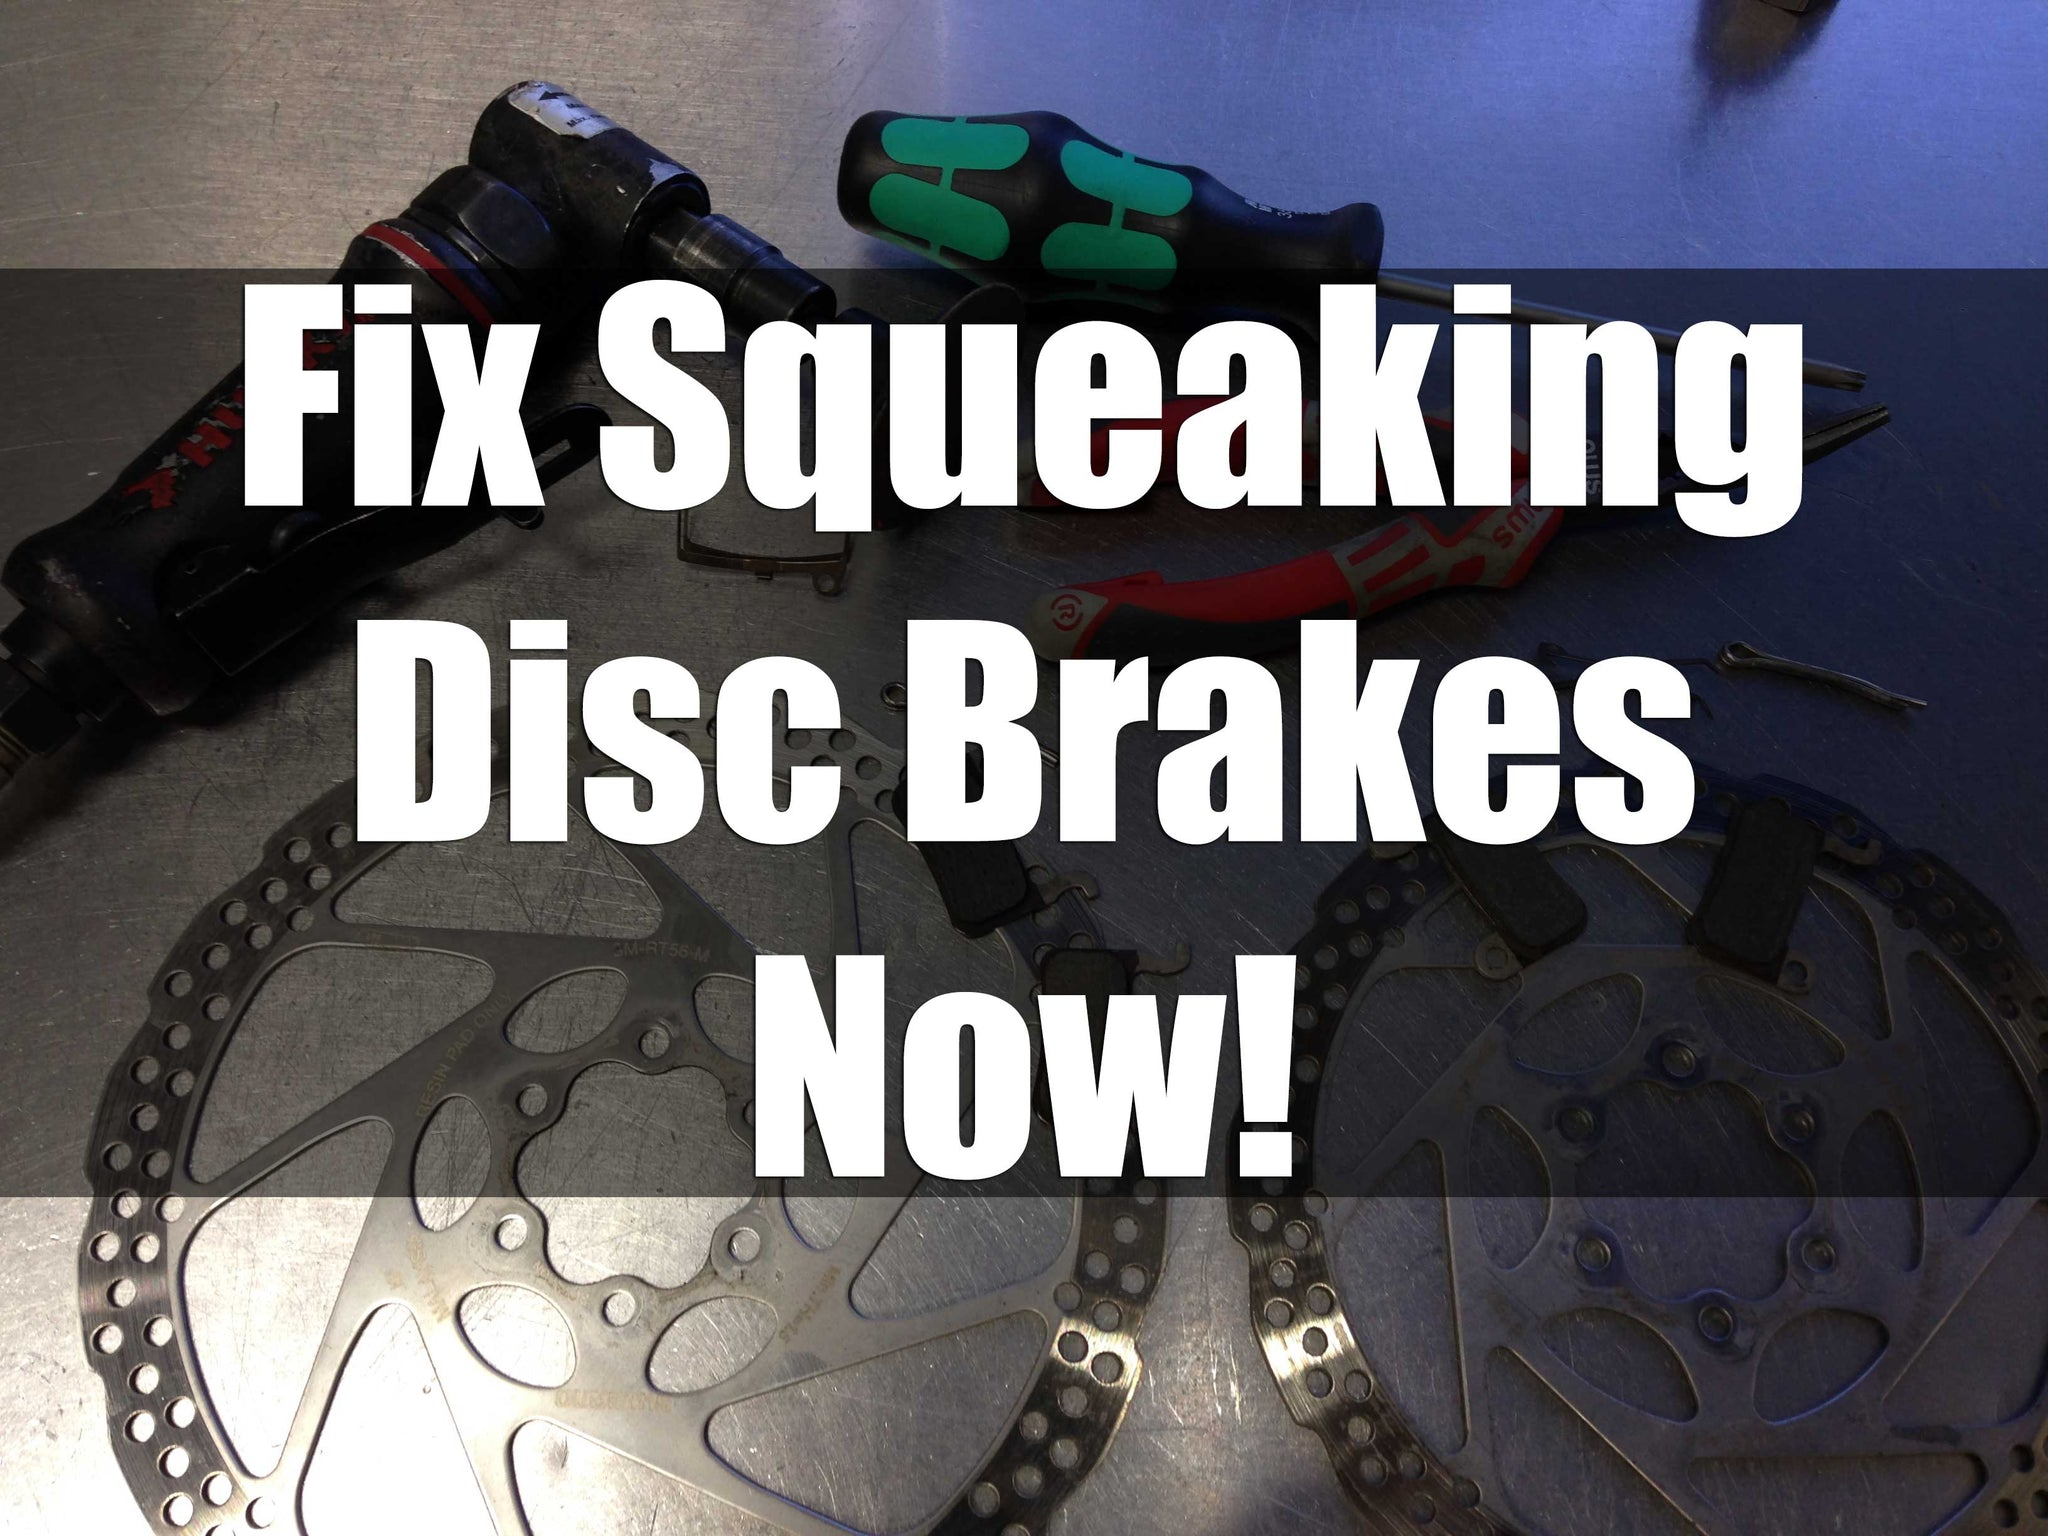 Fix Squeaking Disc Brakes Now!